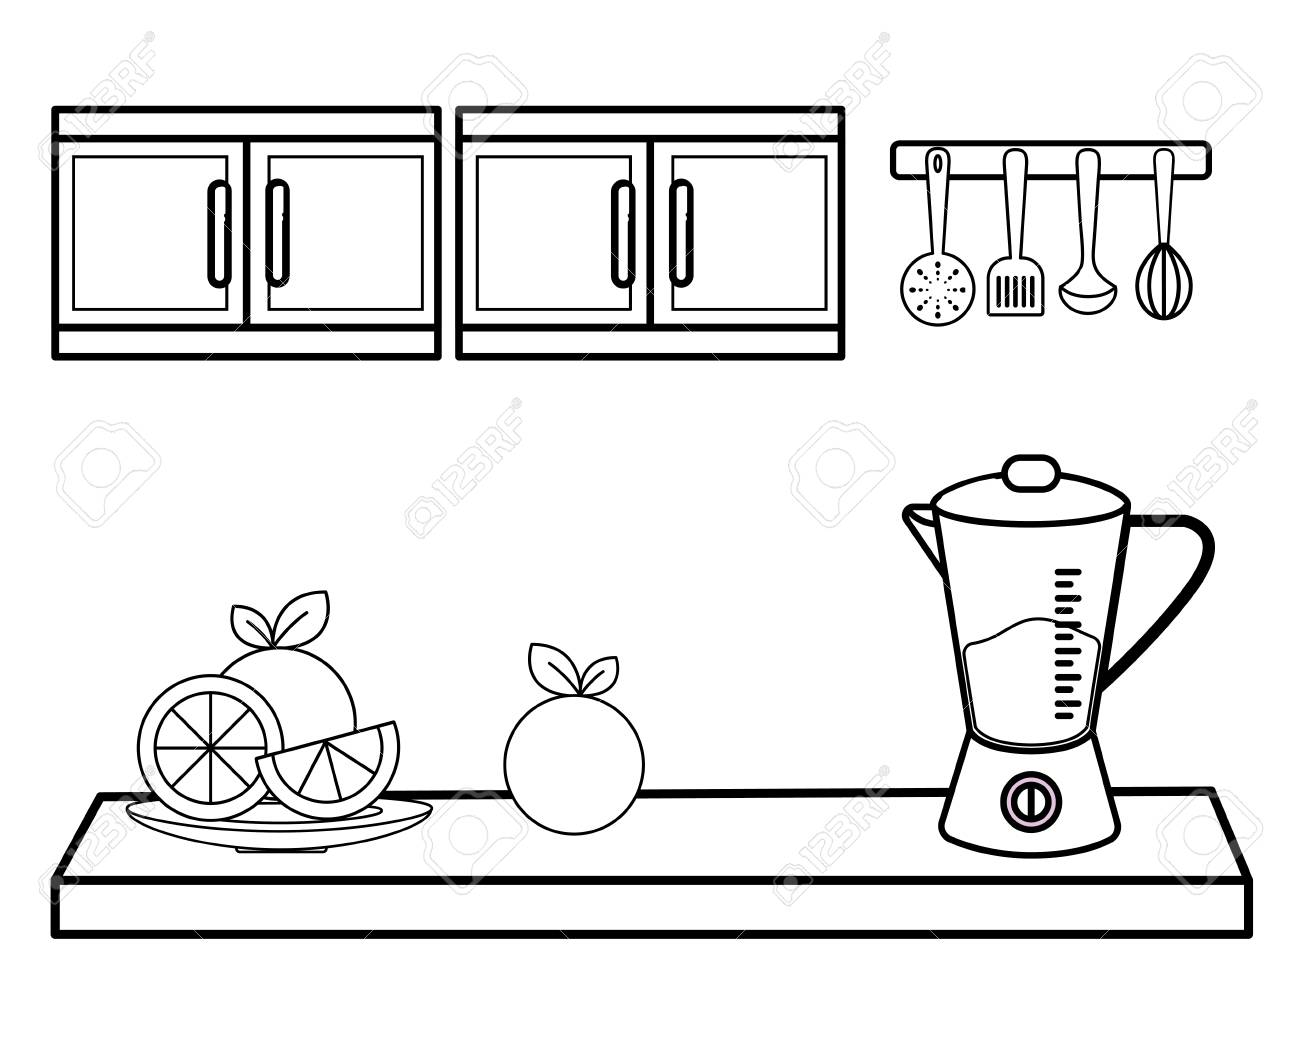 Fruits And Mixer Concept Of Kitchen Supplies Domestic Household